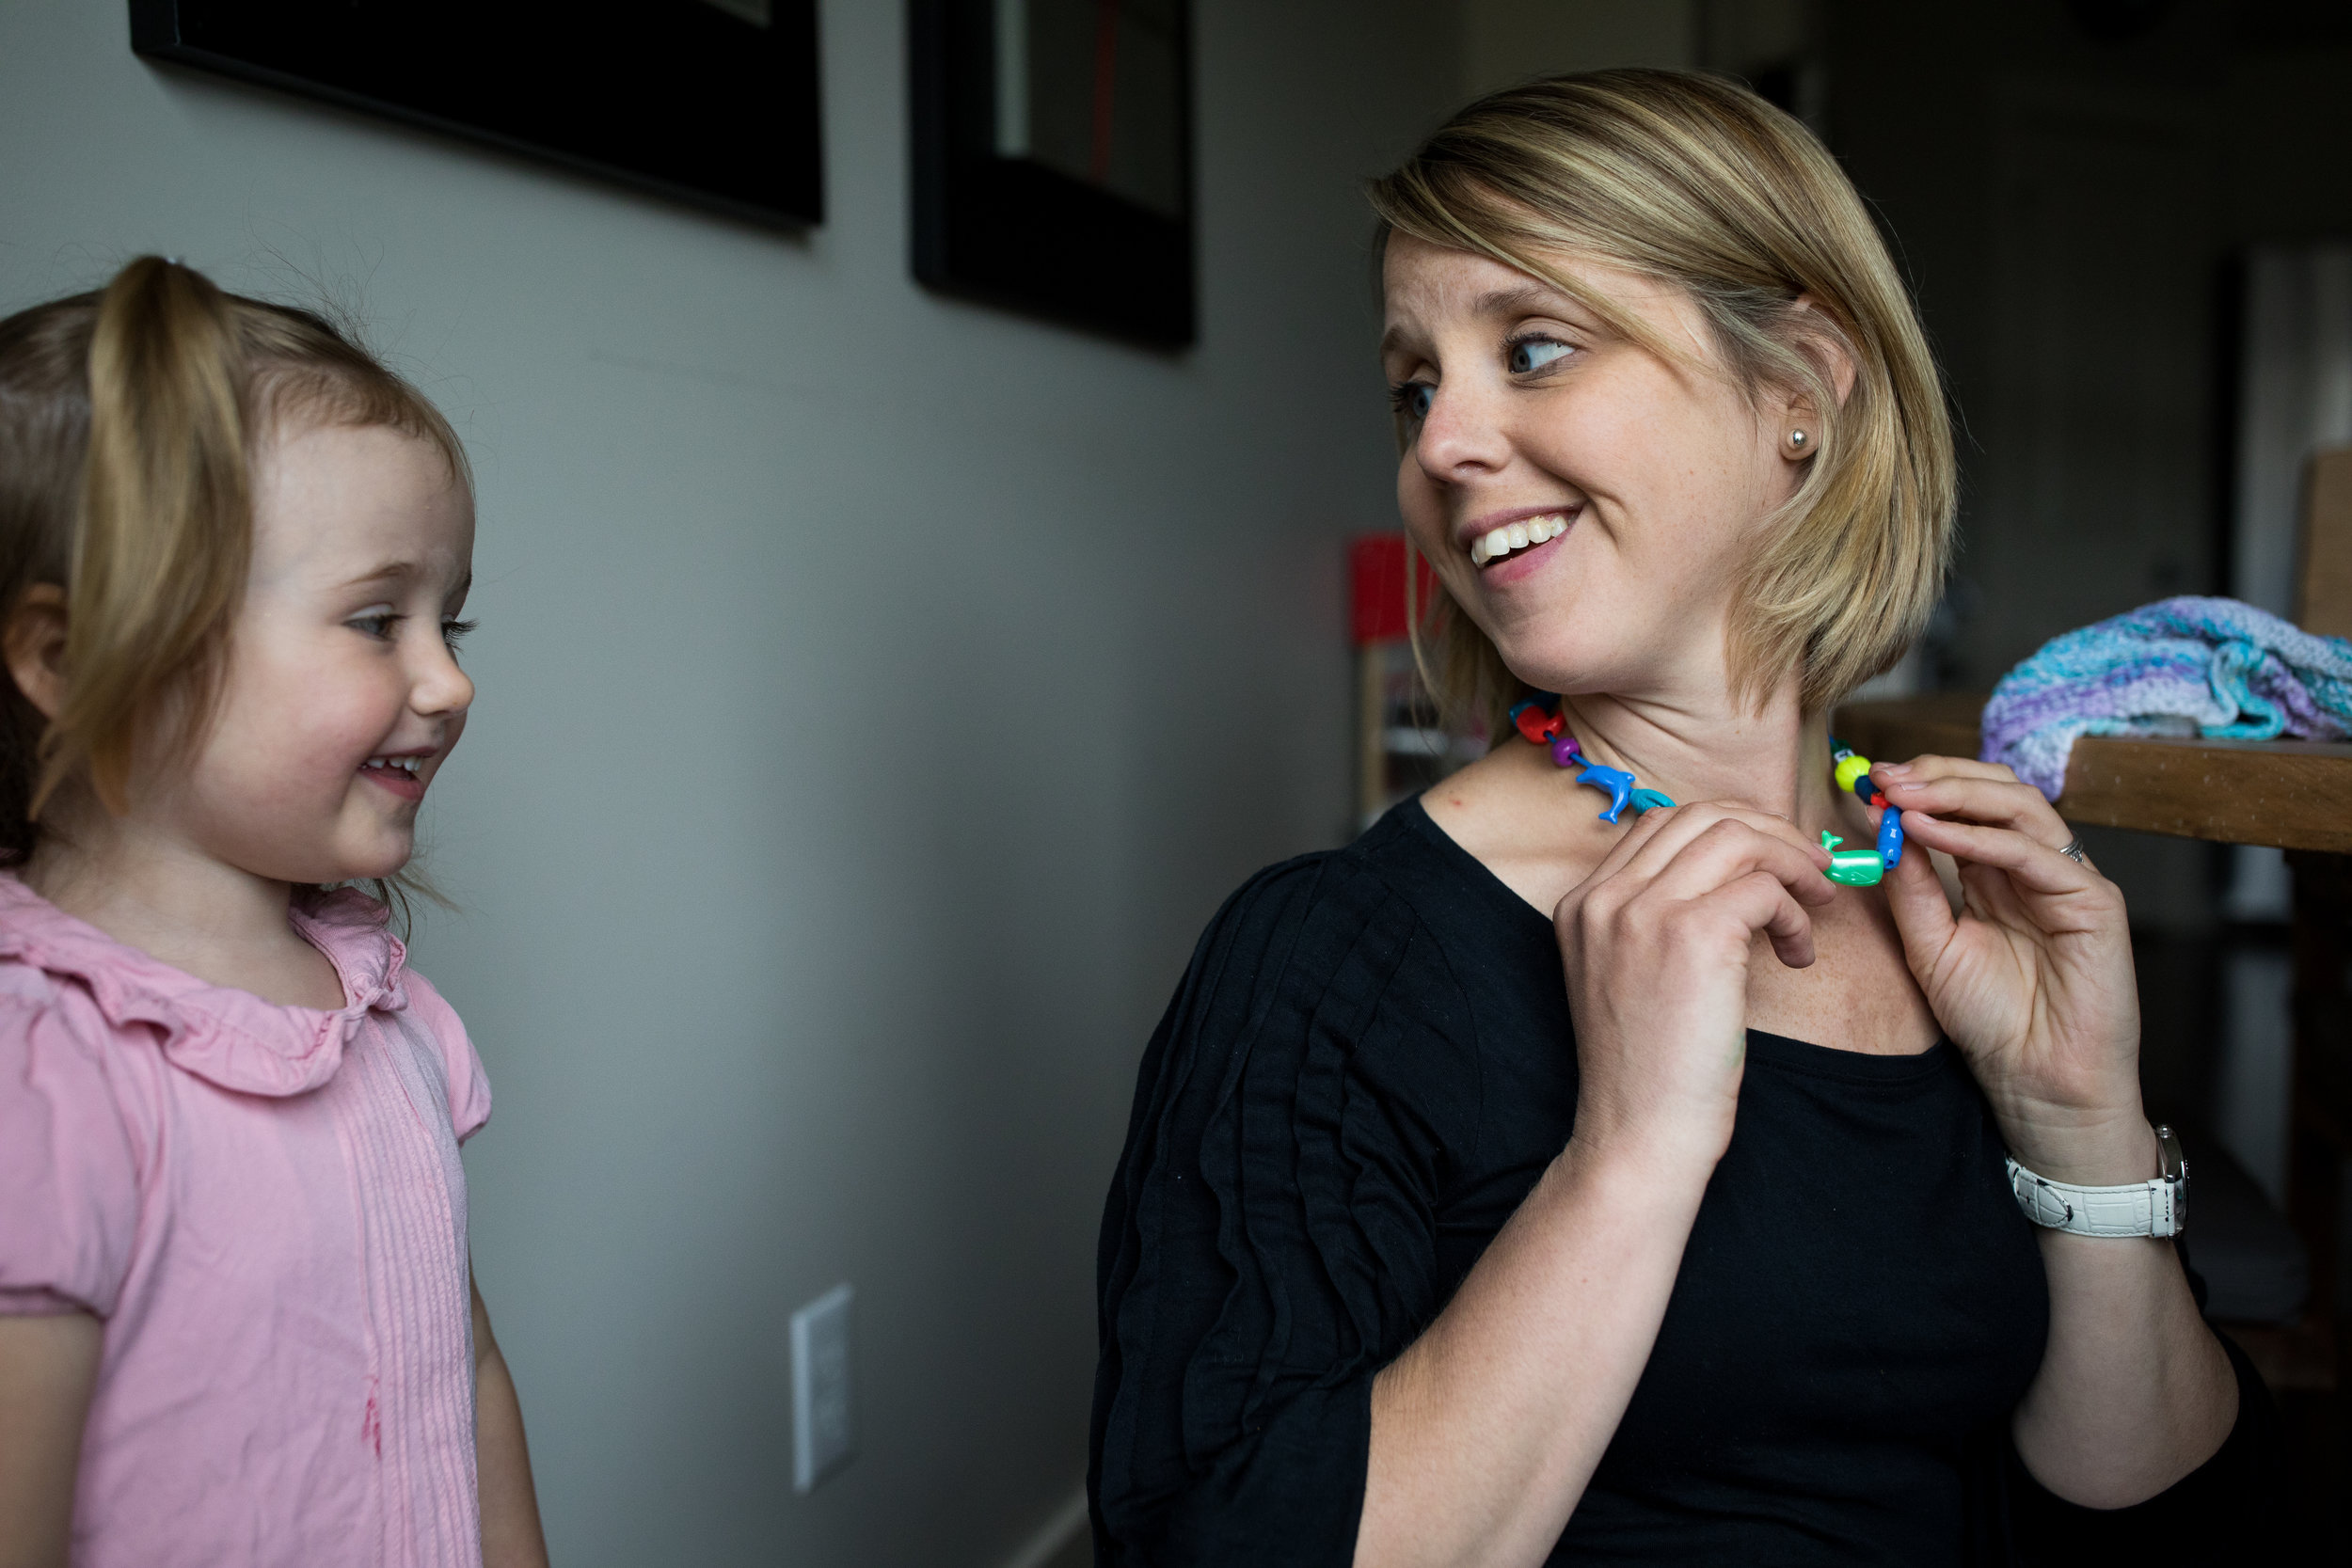 mom gets necklace from toddler